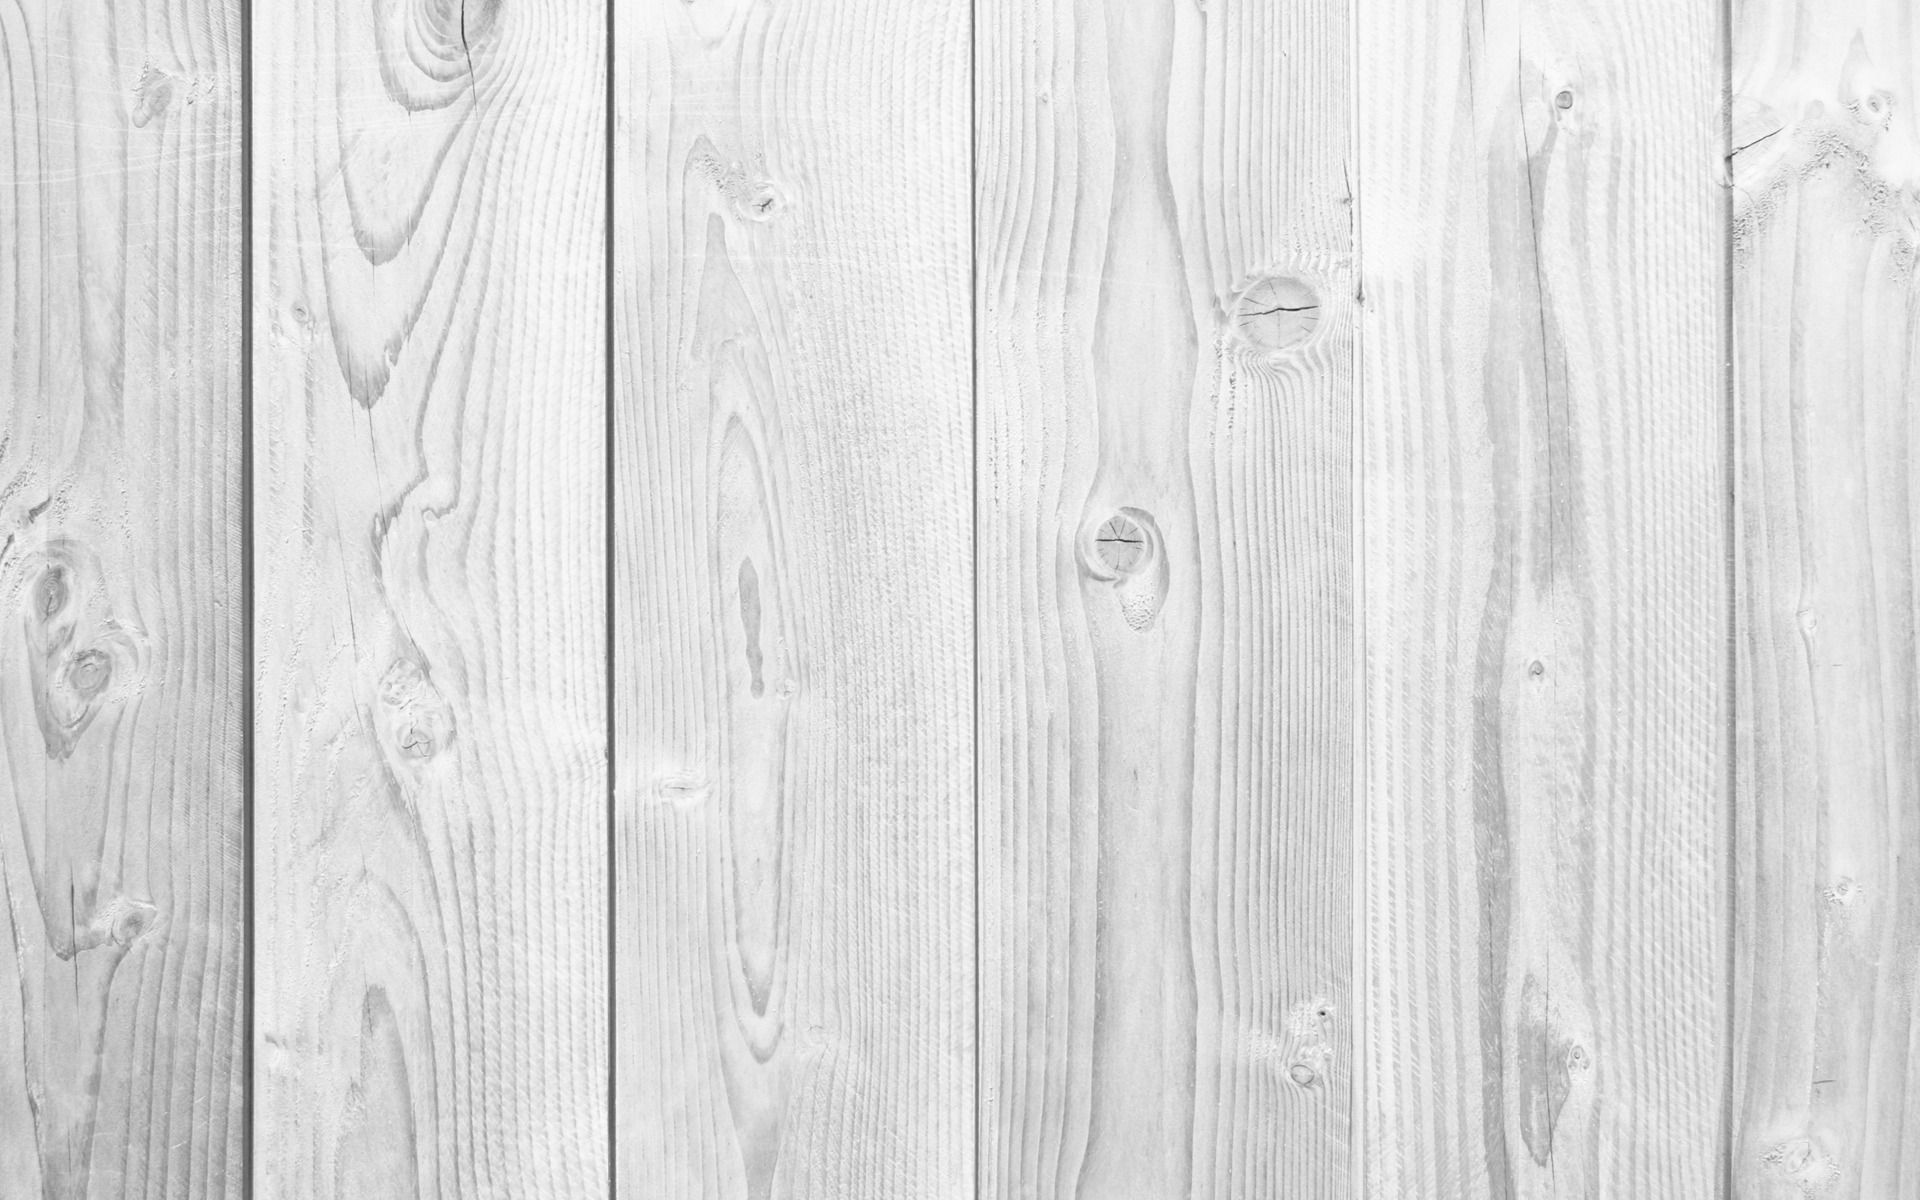 White Wood Wall Texture Wallpaper Jpg 1920 1200 Wood Wallpaper White Wood Texture Wood Wall Texture